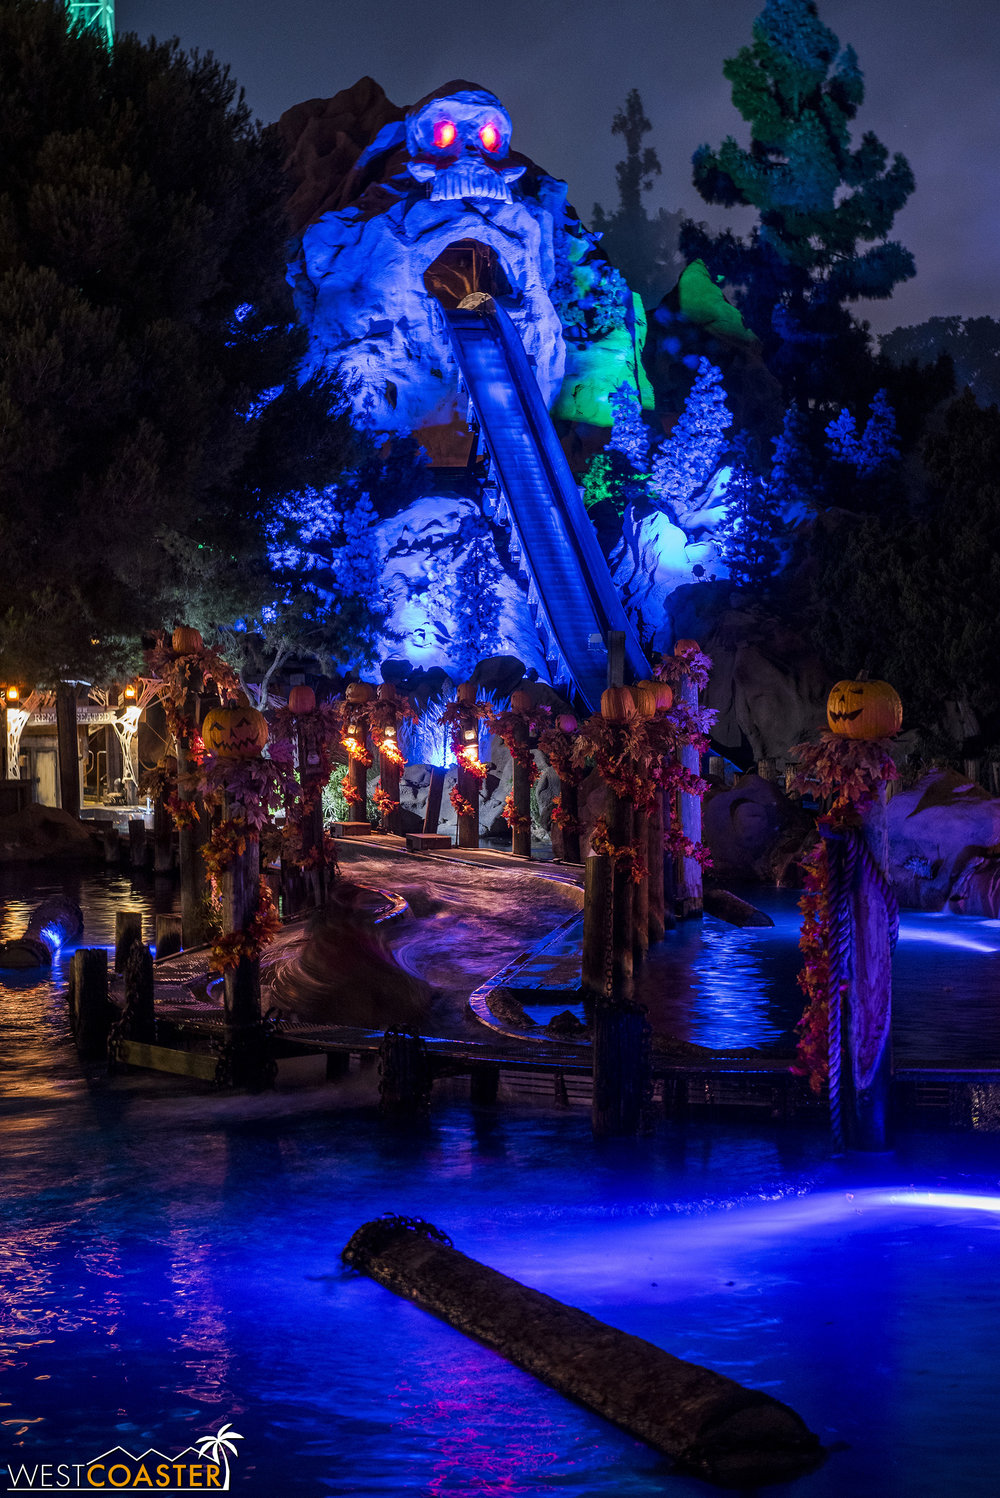 The Log Ride looks sublime at night during Haunt.